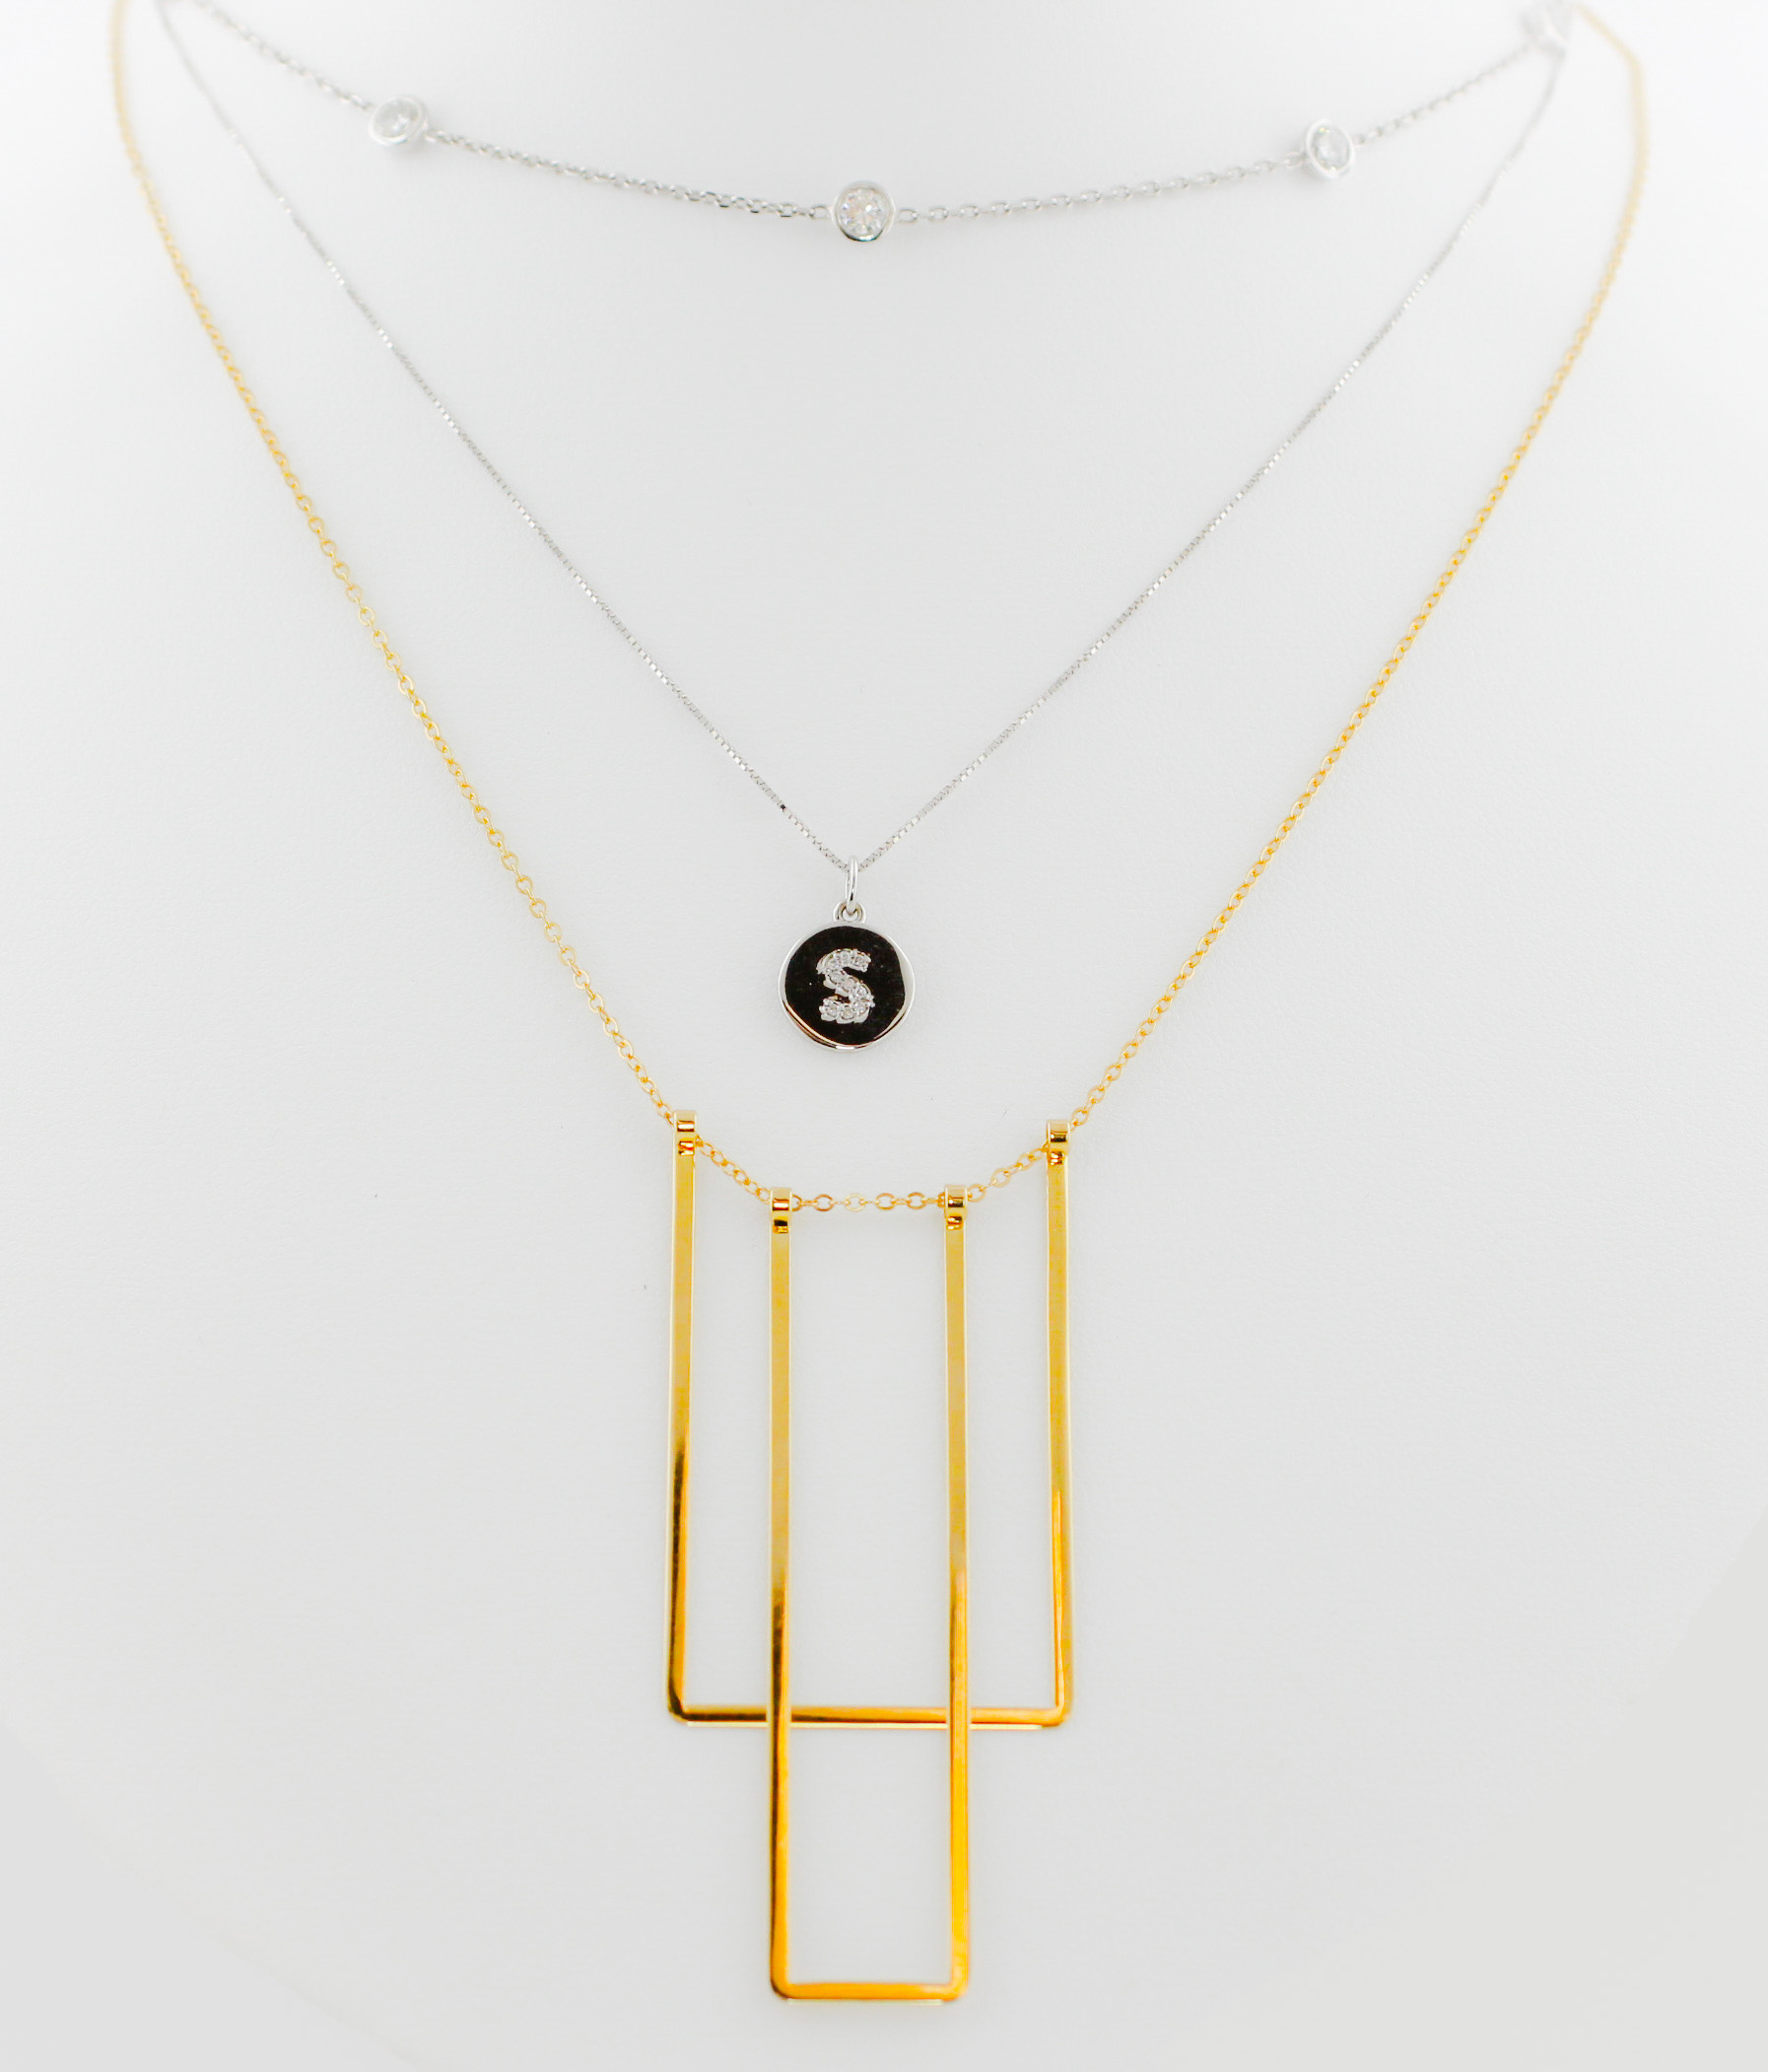 Trending: Layering Necklaces